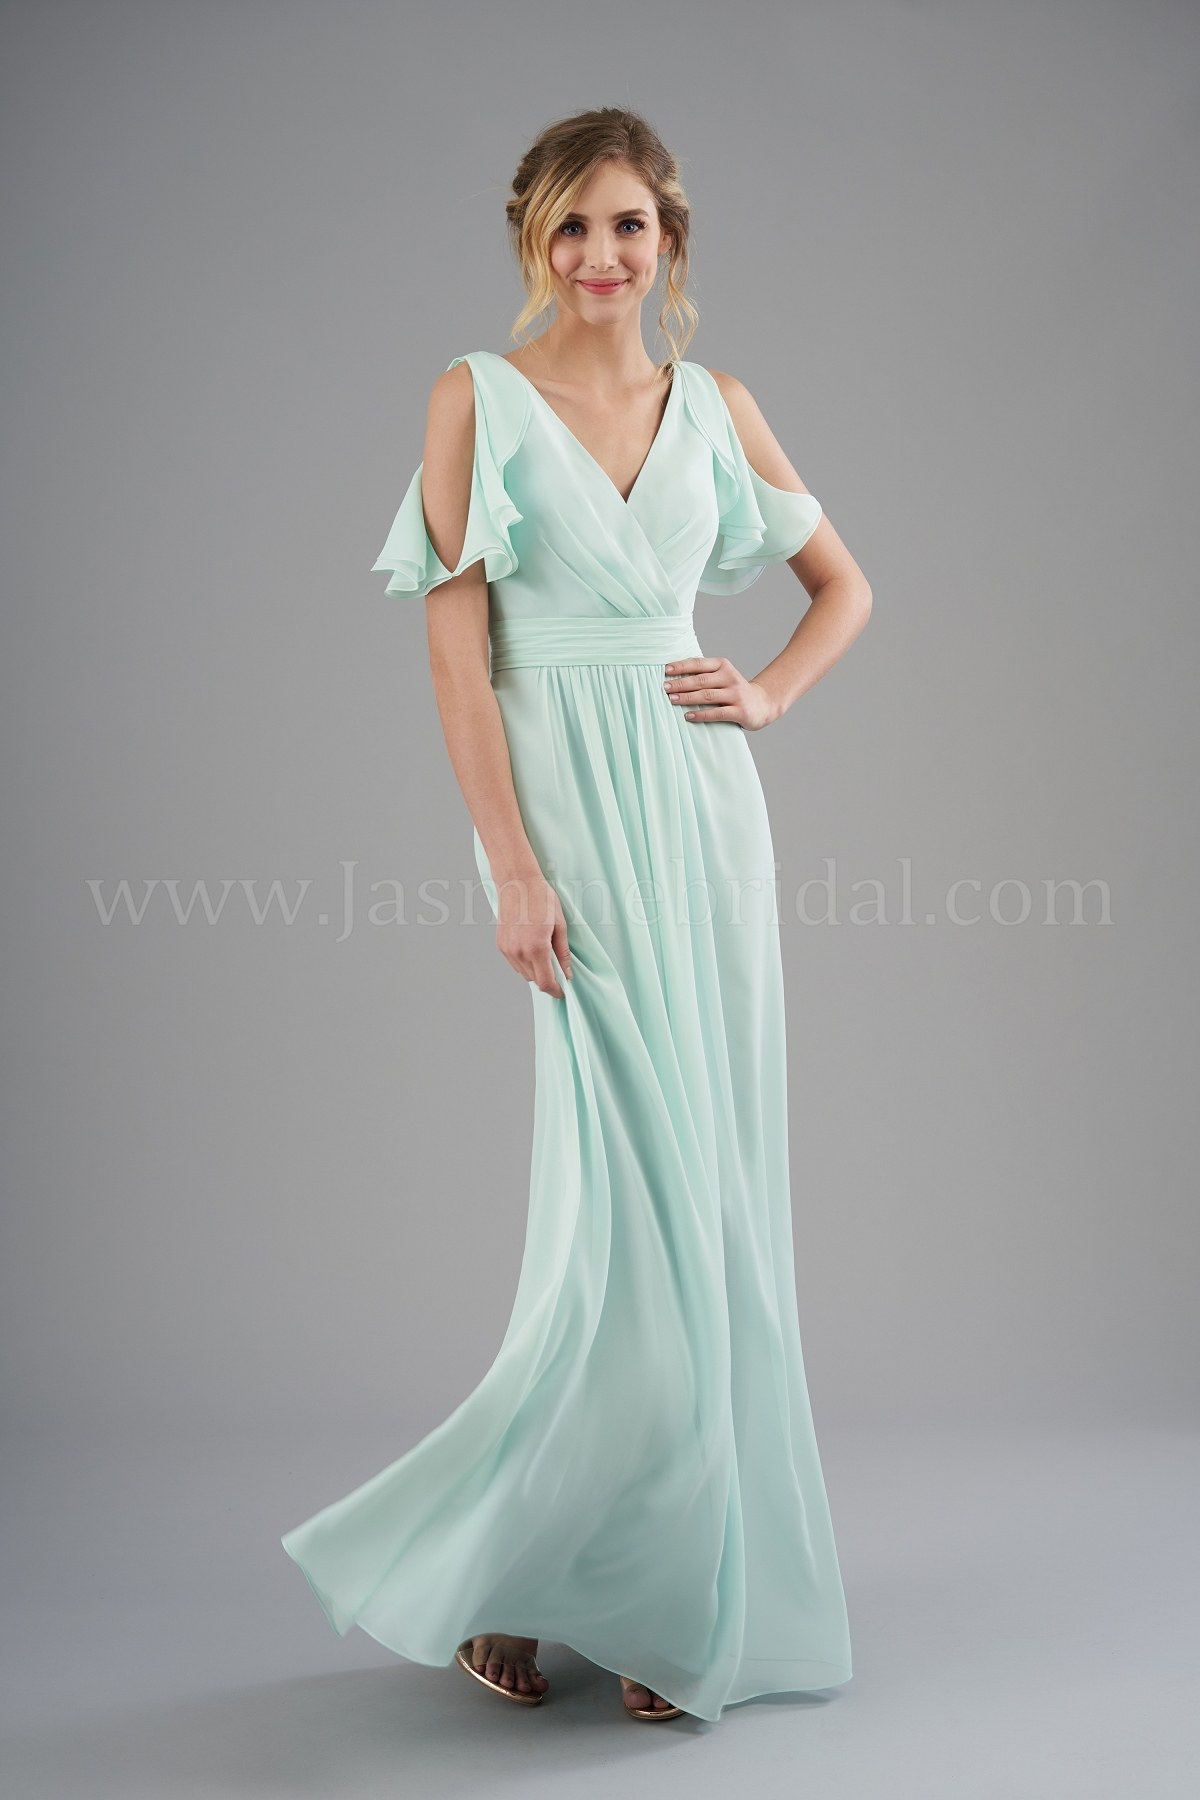 bridesmaid-dresses-B203054-F